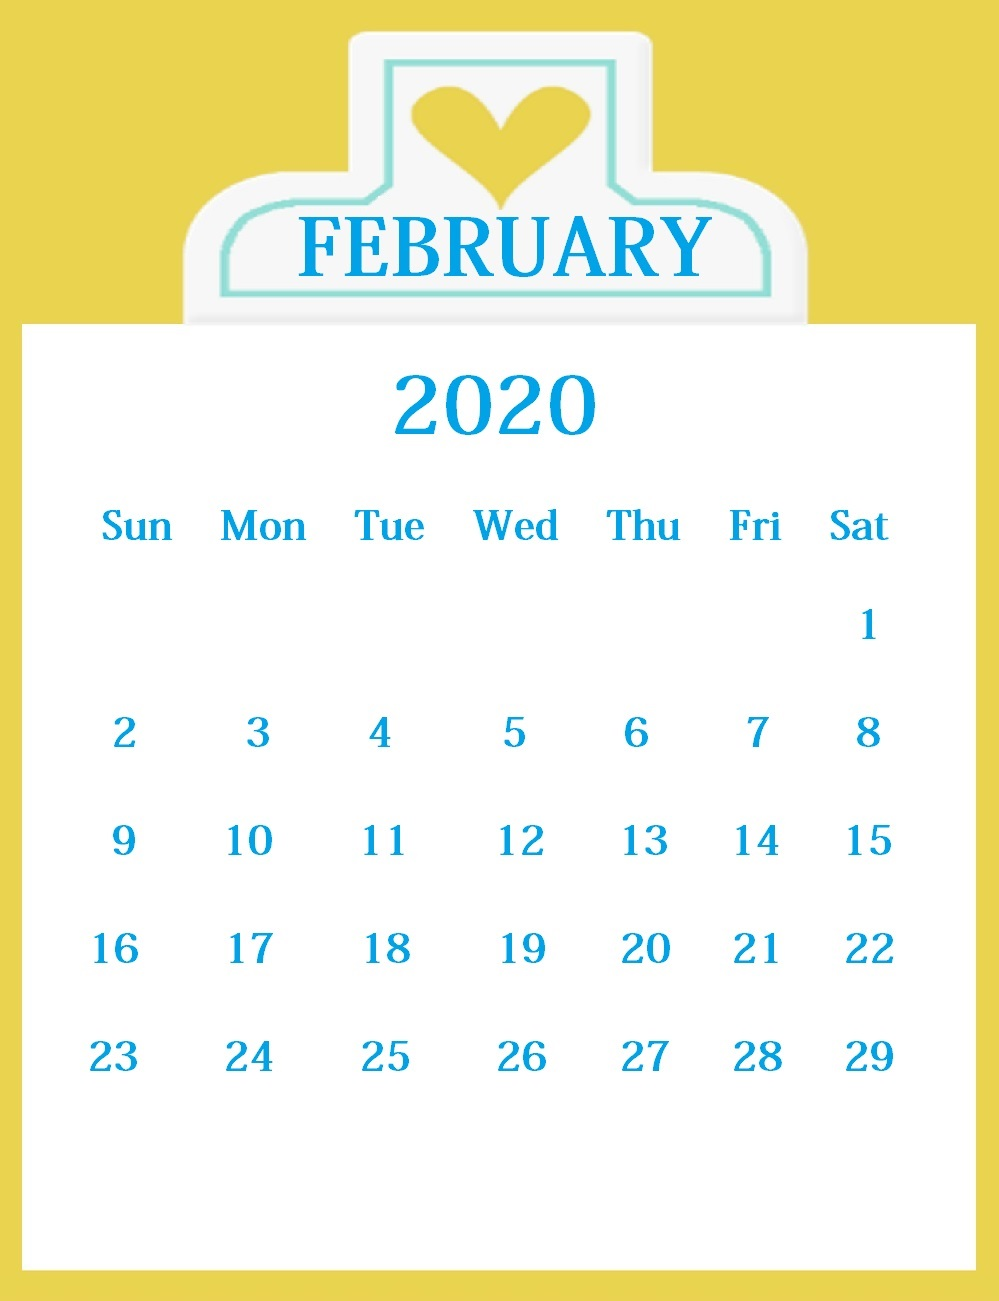 February 2020 Monthly Planner